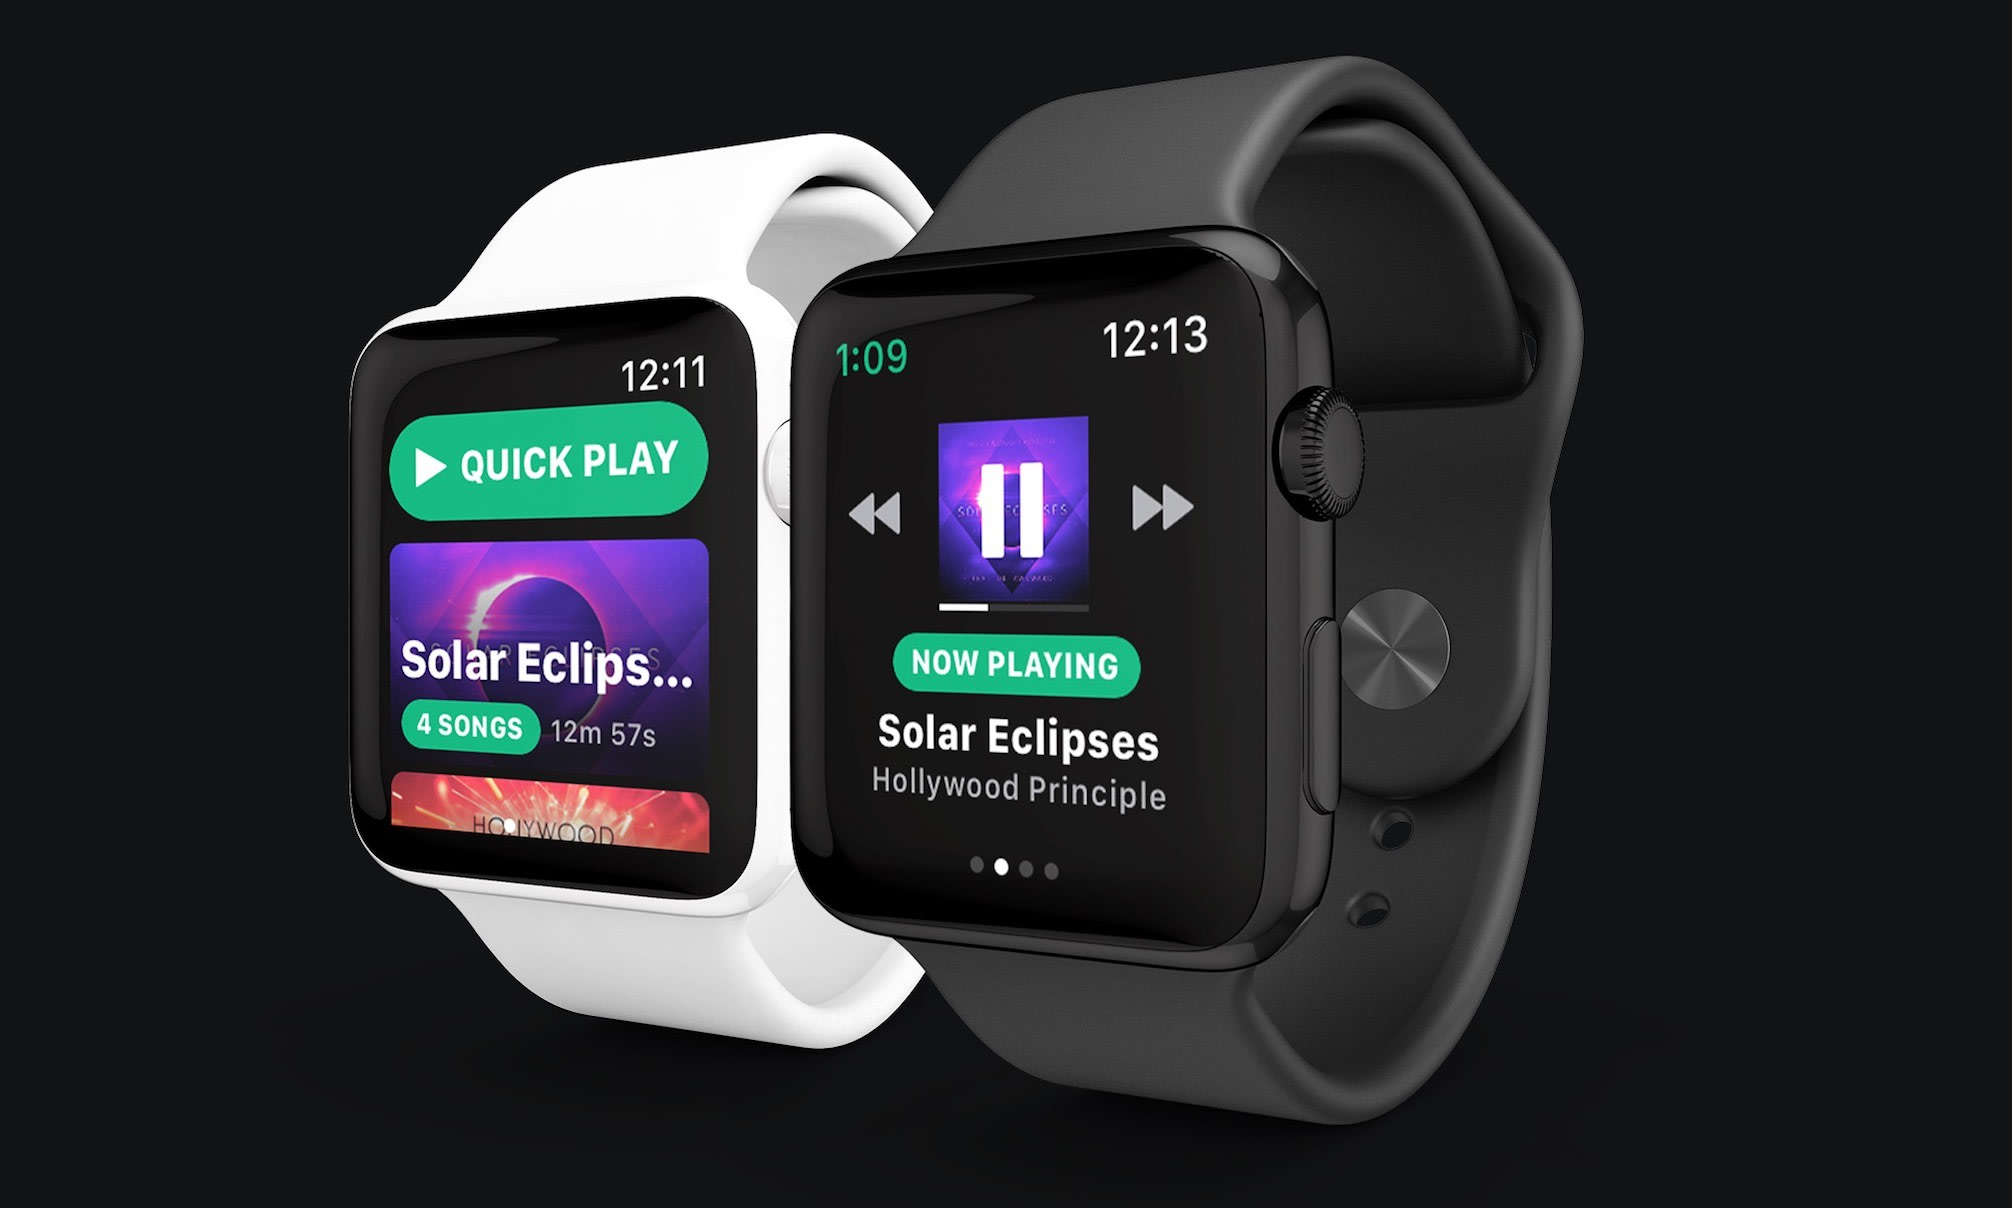 Spotify finally gets serious about an Apple Watch app